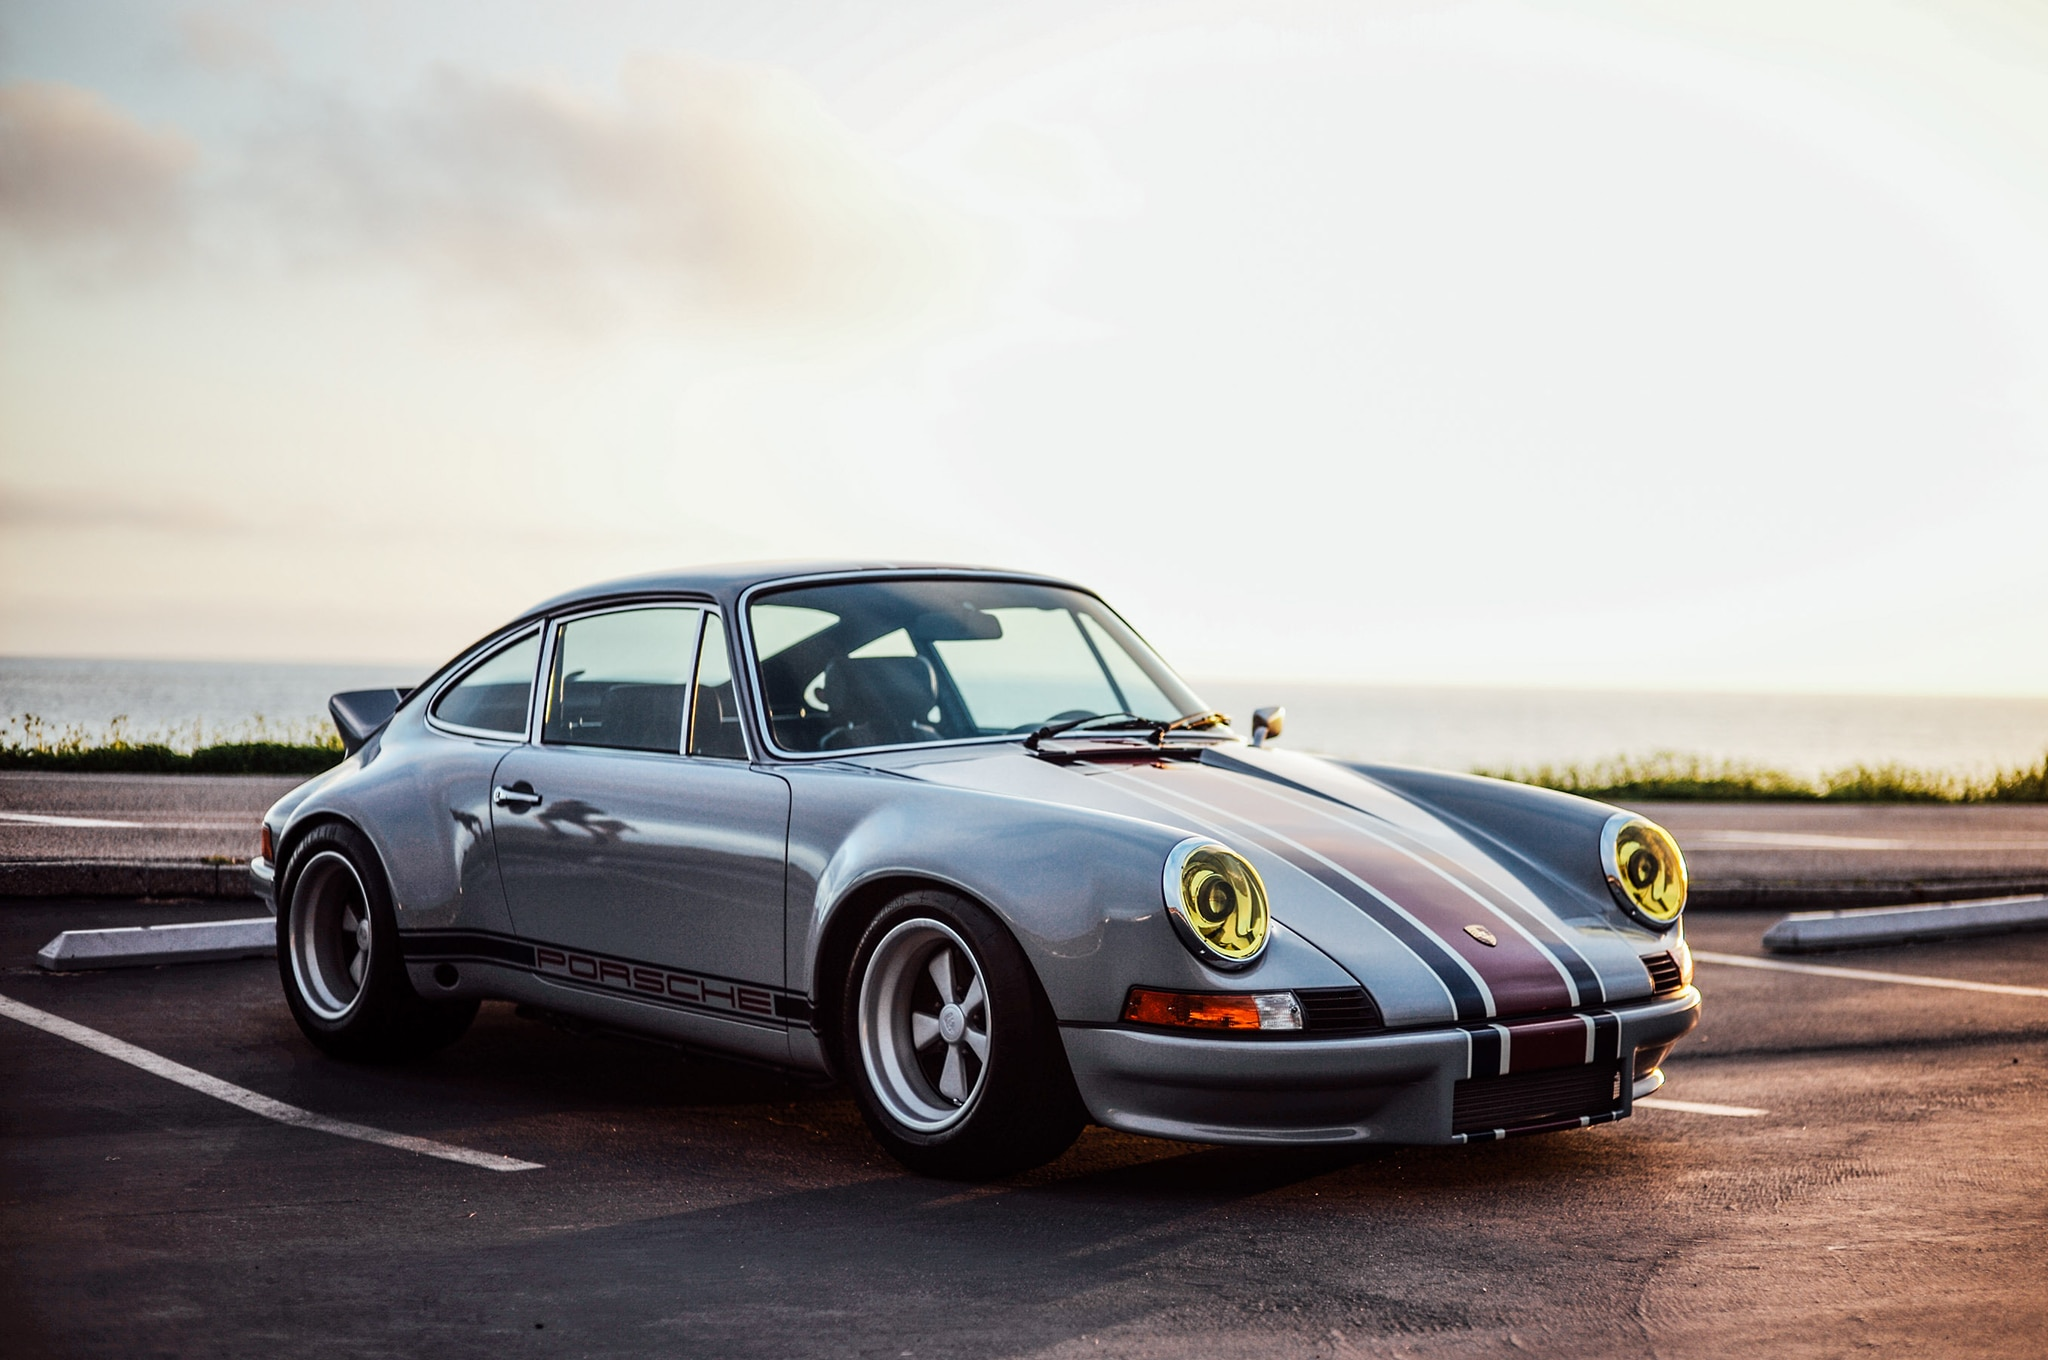 1984 Porsche Carrera RSR Outlaw Petrolicious Front Three Quarters